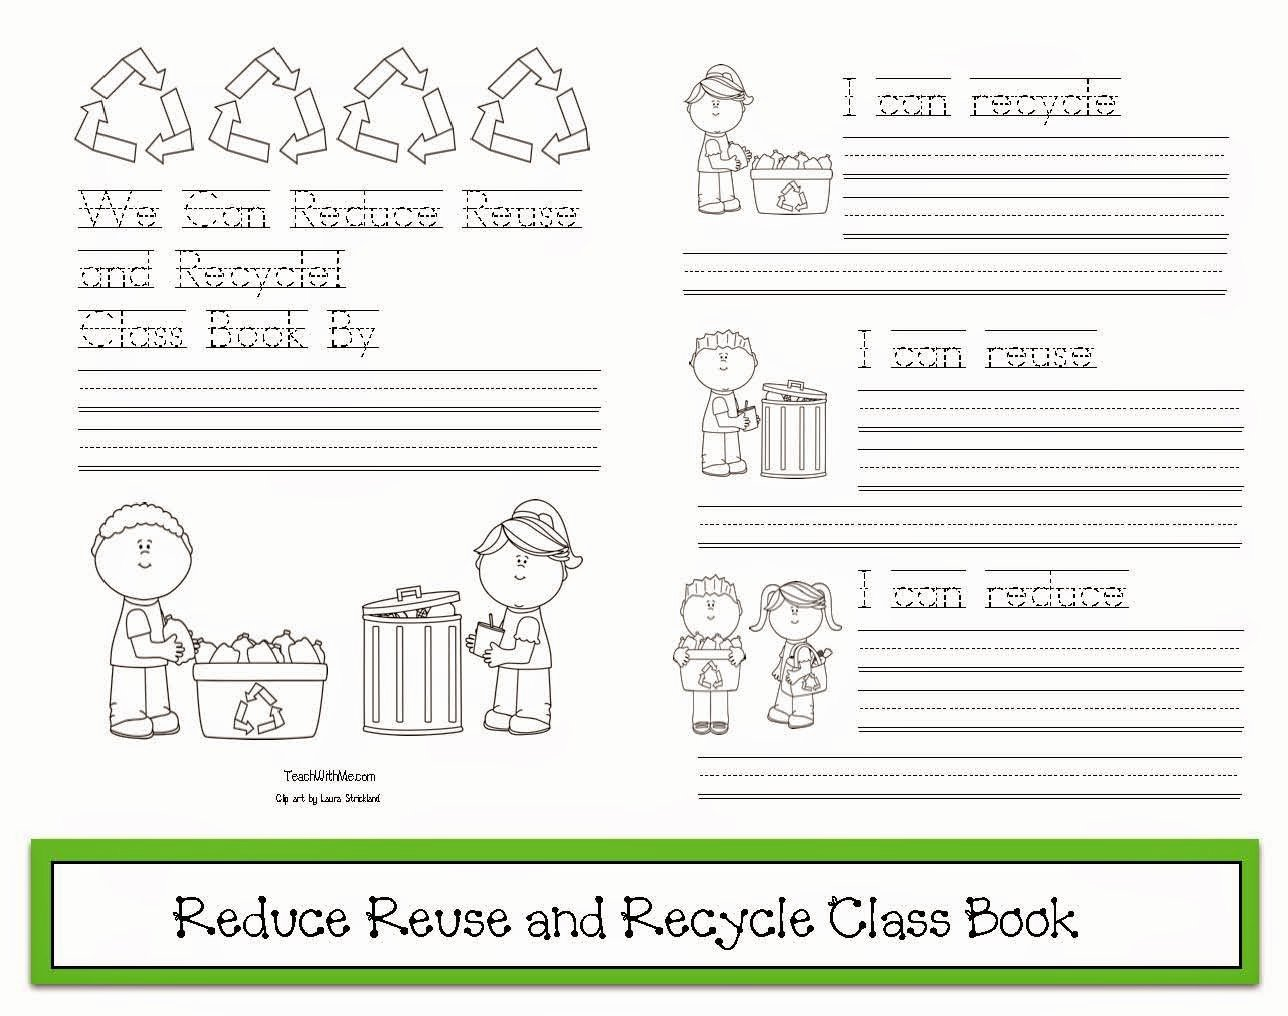 Reduce Reuse Recycle Worksheet Inspirational Reduce Reuse Recycle Worksheets